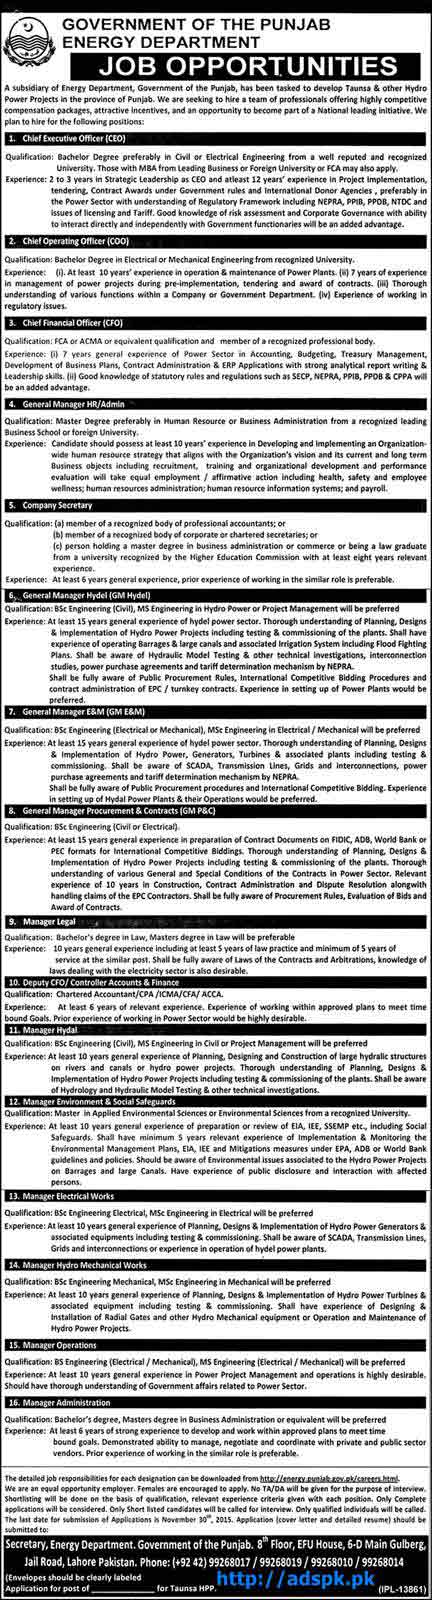 Latest Jobs of Energy Department Govt. of Punjab Jobs 2015 for Chief Executive Officer Company Secretary General Managers Last Date 30-11-2015 Apply Now